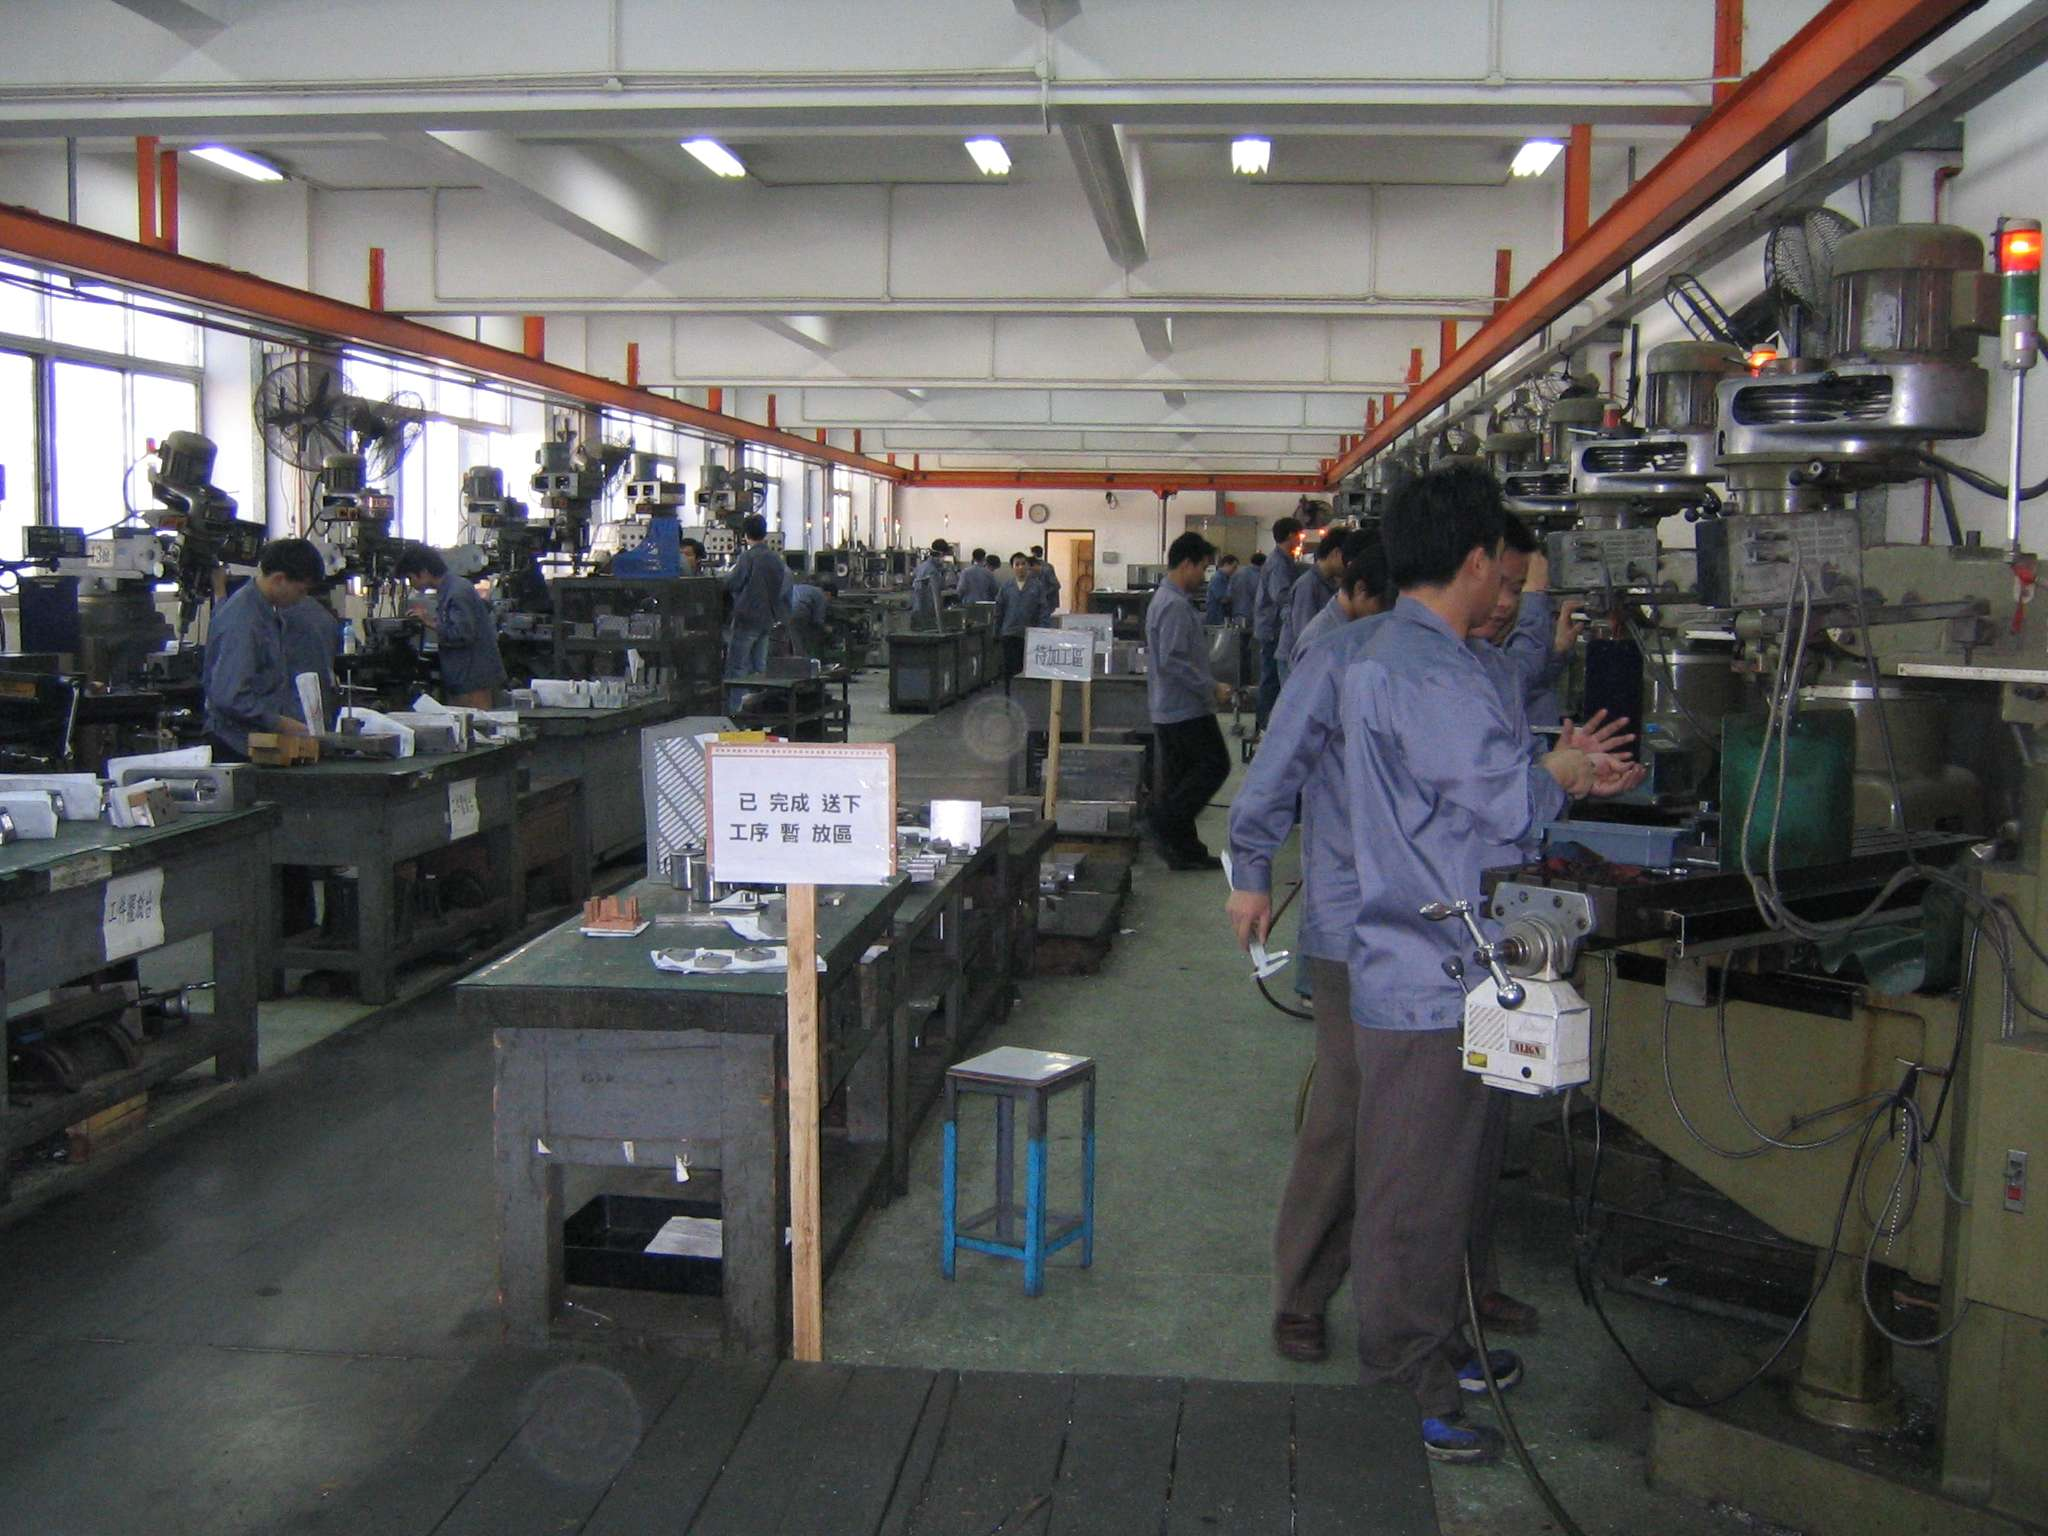 Is the mold design you approved in China actually the mold that was built?